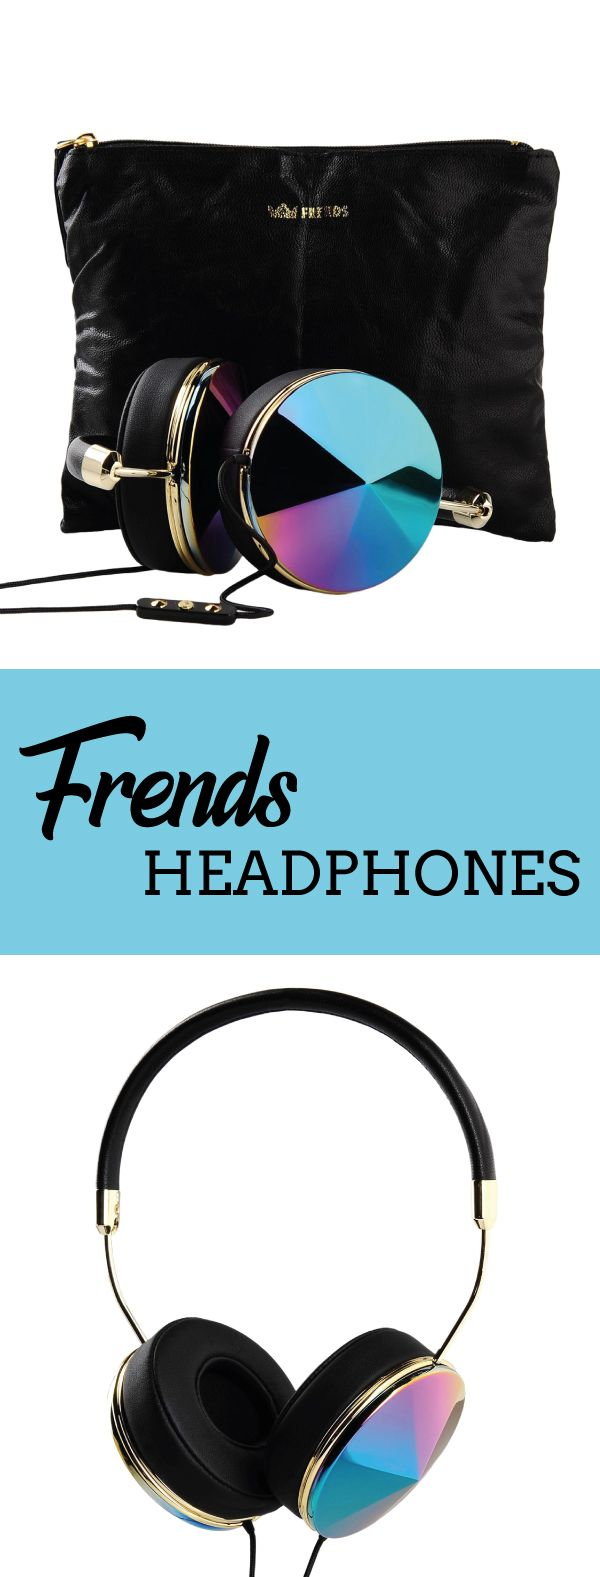 I just want this ♥️ I love the headphone colors.   #Accesories #girl #fashion #headphones #women